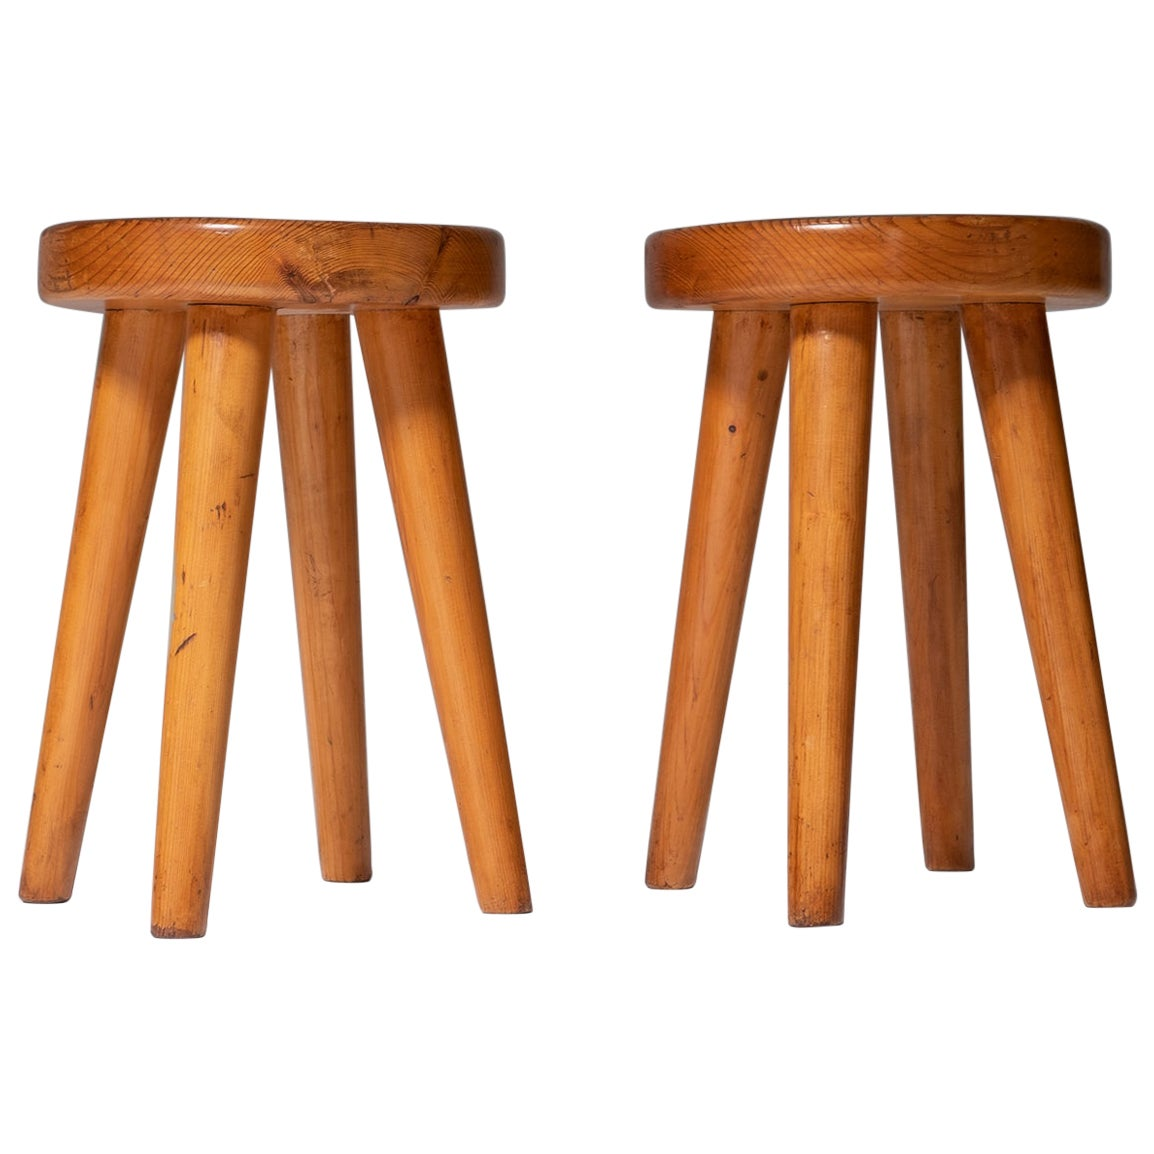 Pair of French Mid-Century Modern Stools in Solid Pine